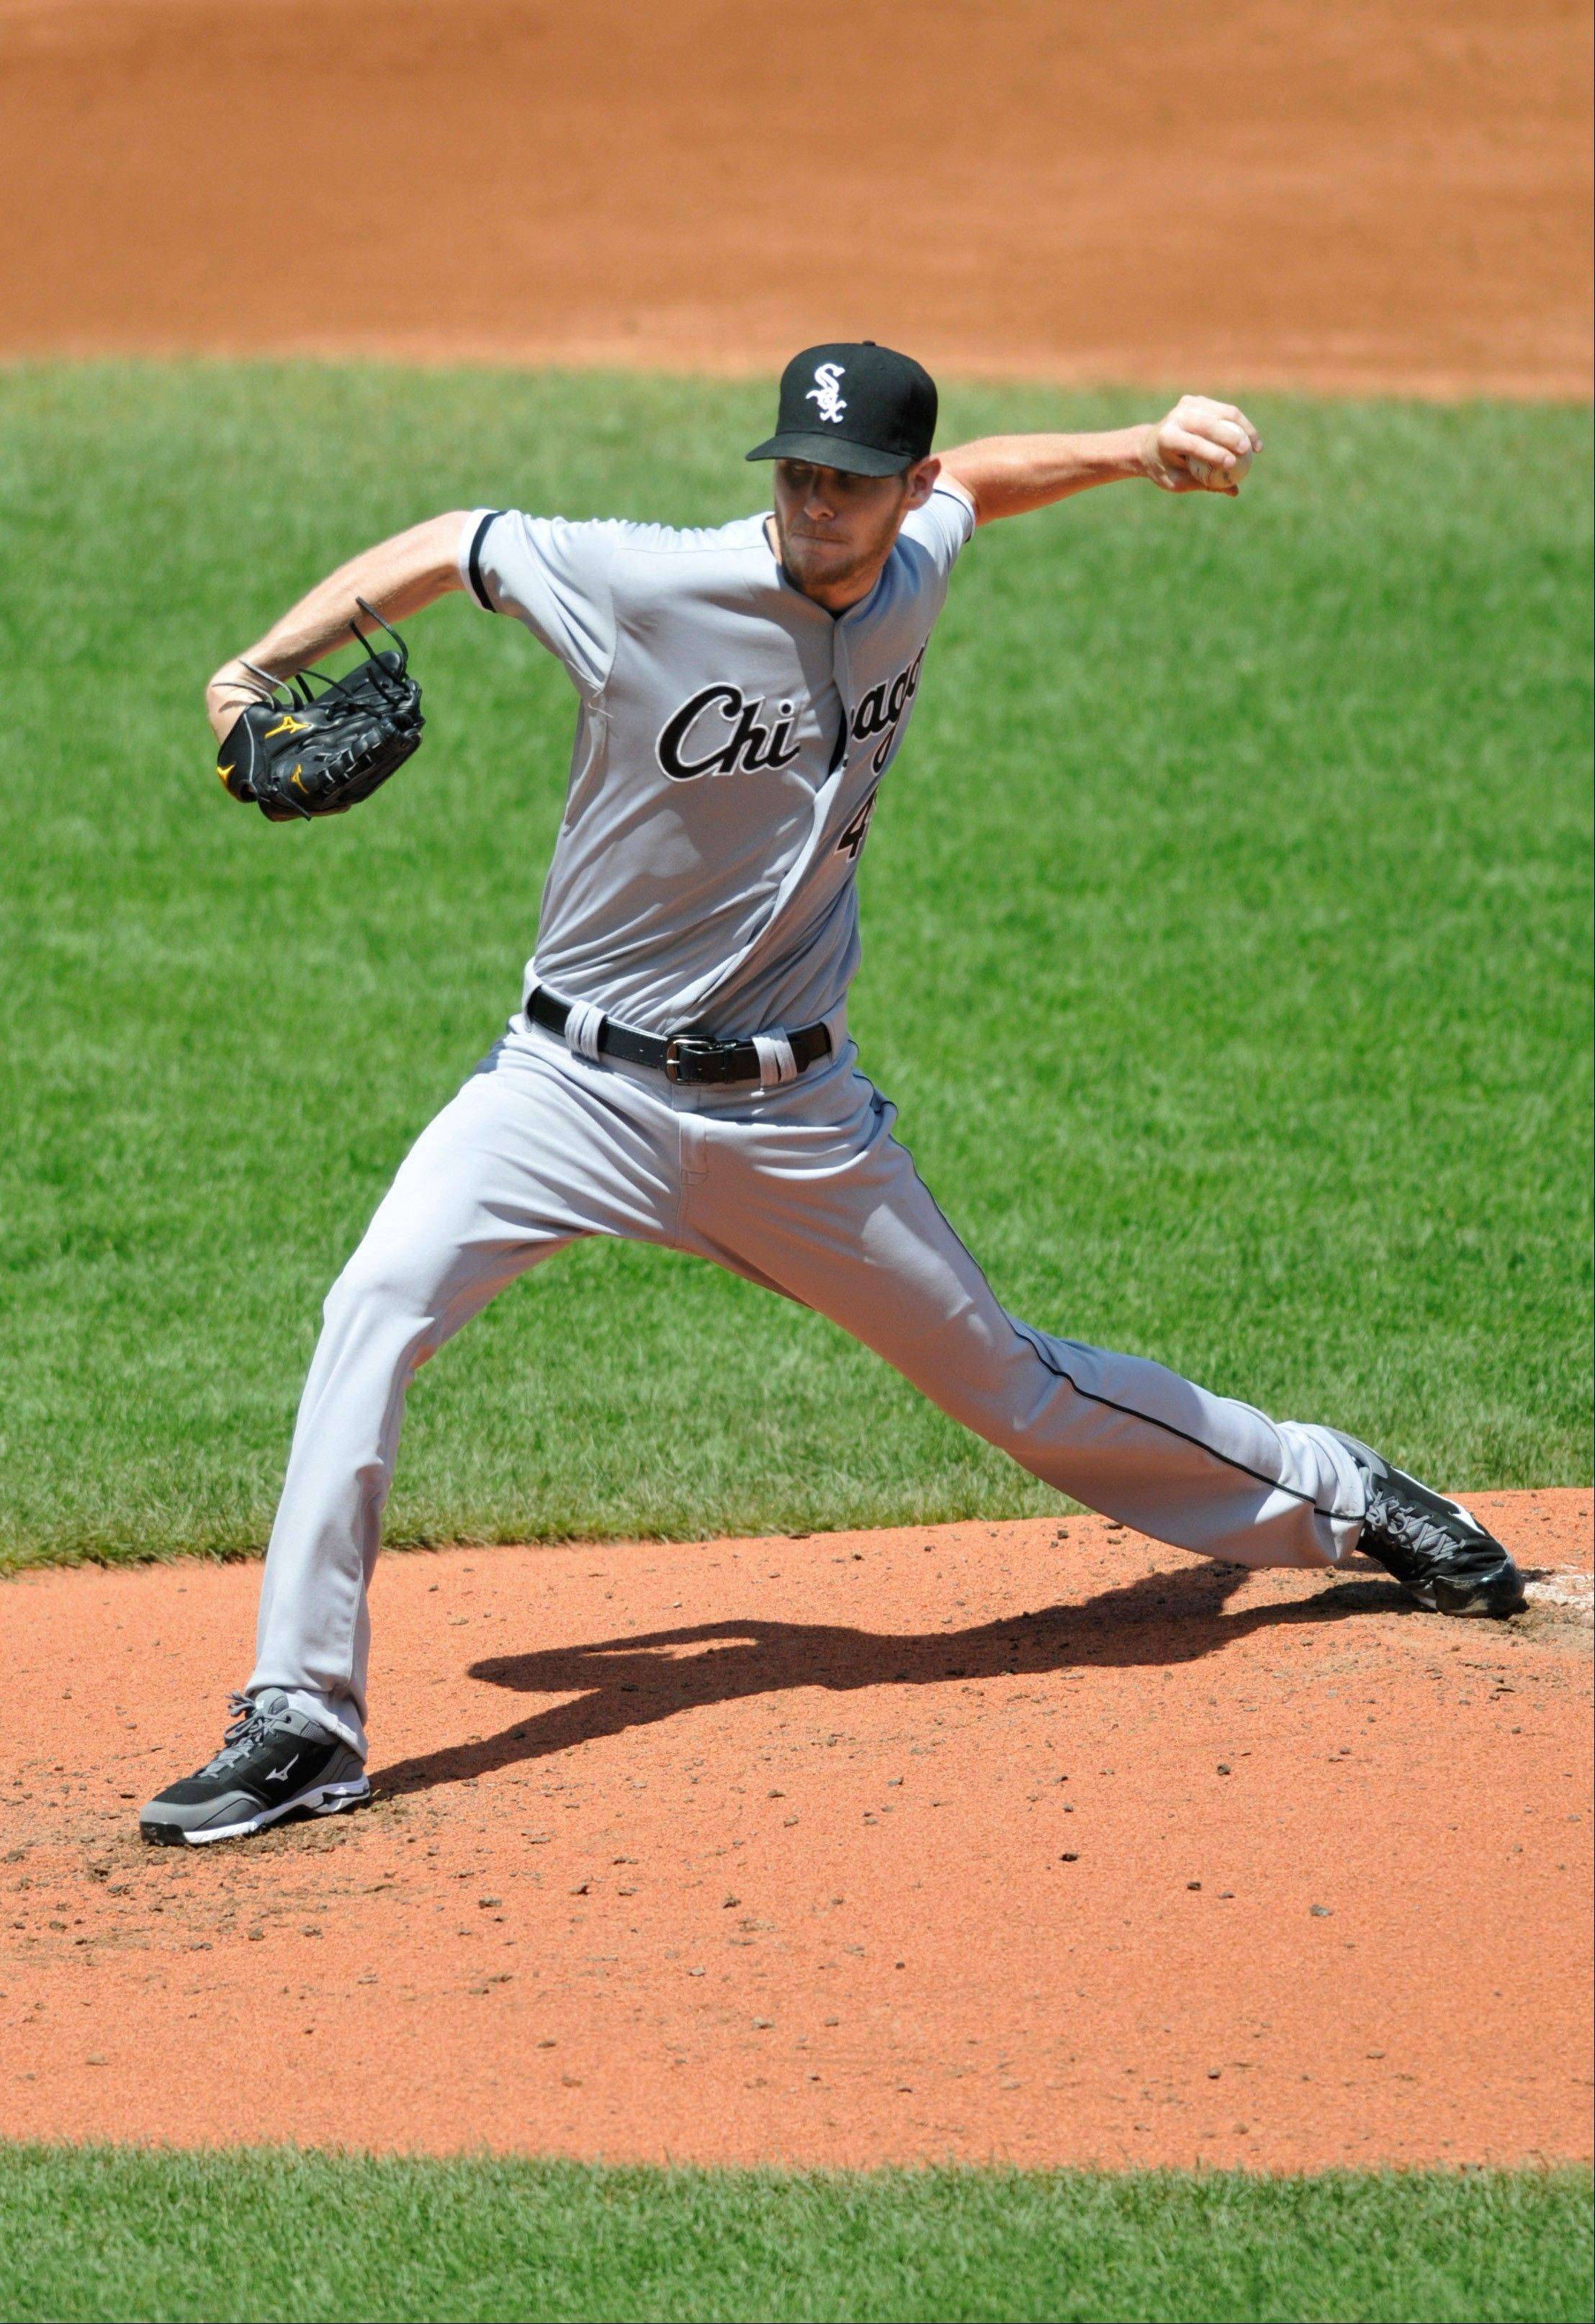 White Sox pitcher Chris Sale allowed 5 runs on 10 hits in 5 innings of work Thursday, falling to 6-11 on the season.